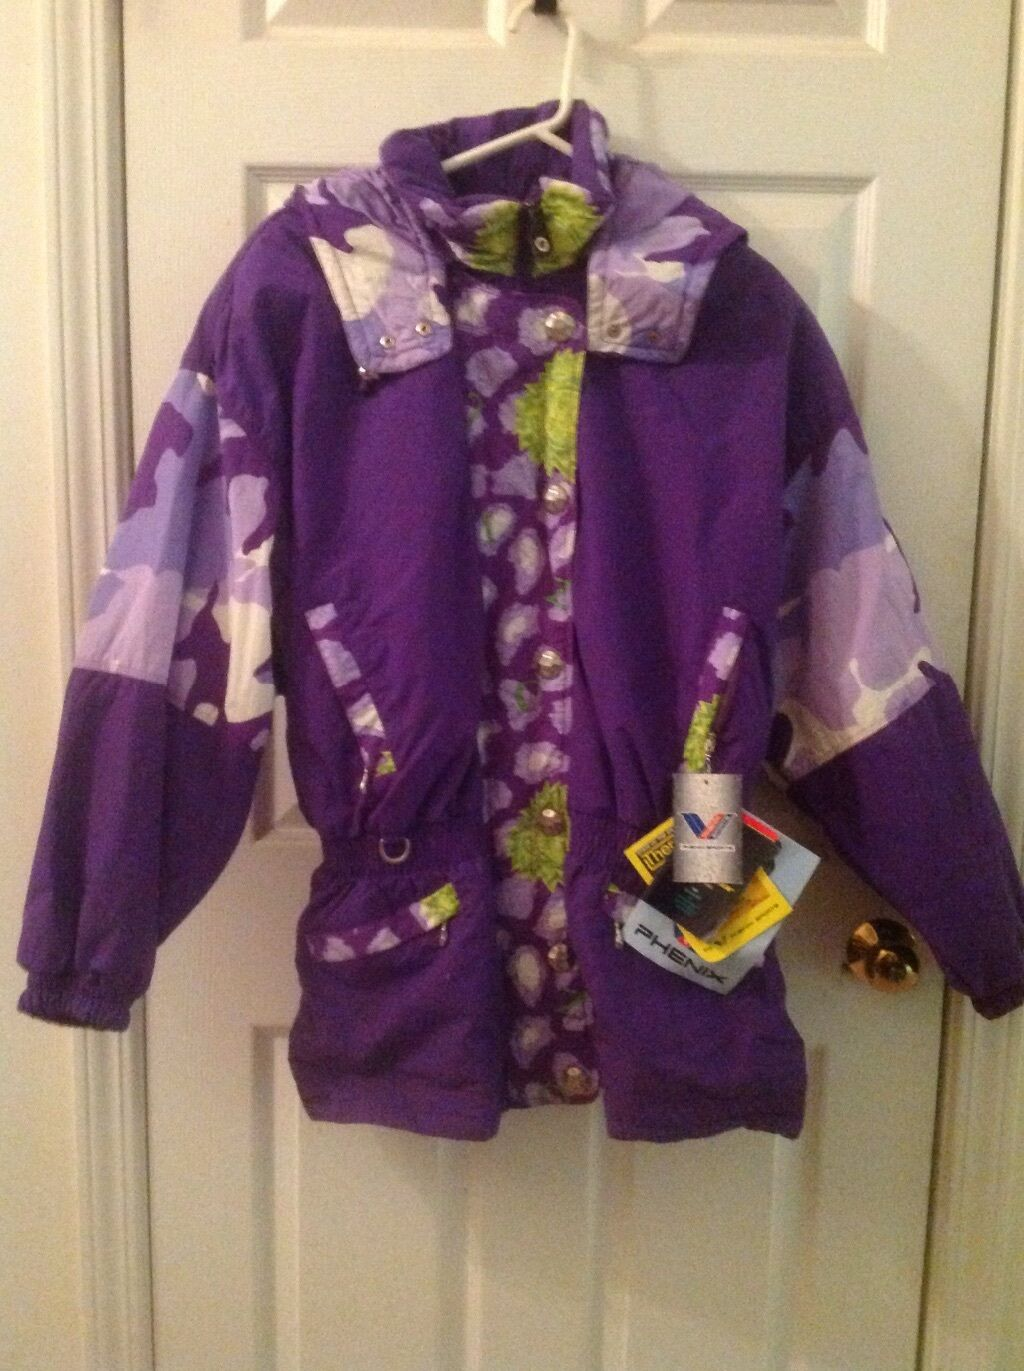 PHENIX Women's Ski Snowboard Parka,  NWT, Size 14  great selection & quick delivery